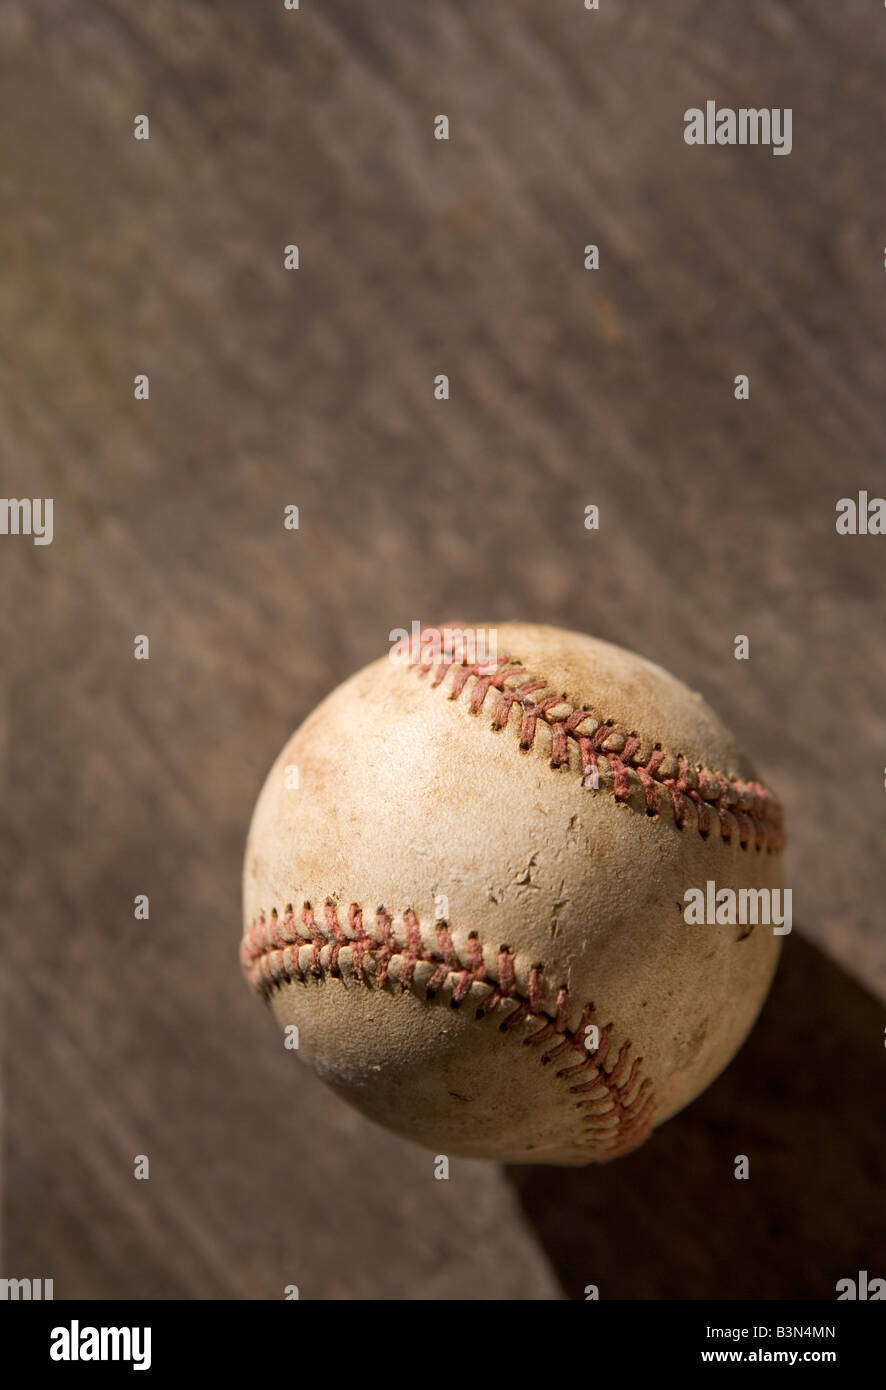 A scuffed and used baseball after hard use - Stock Image